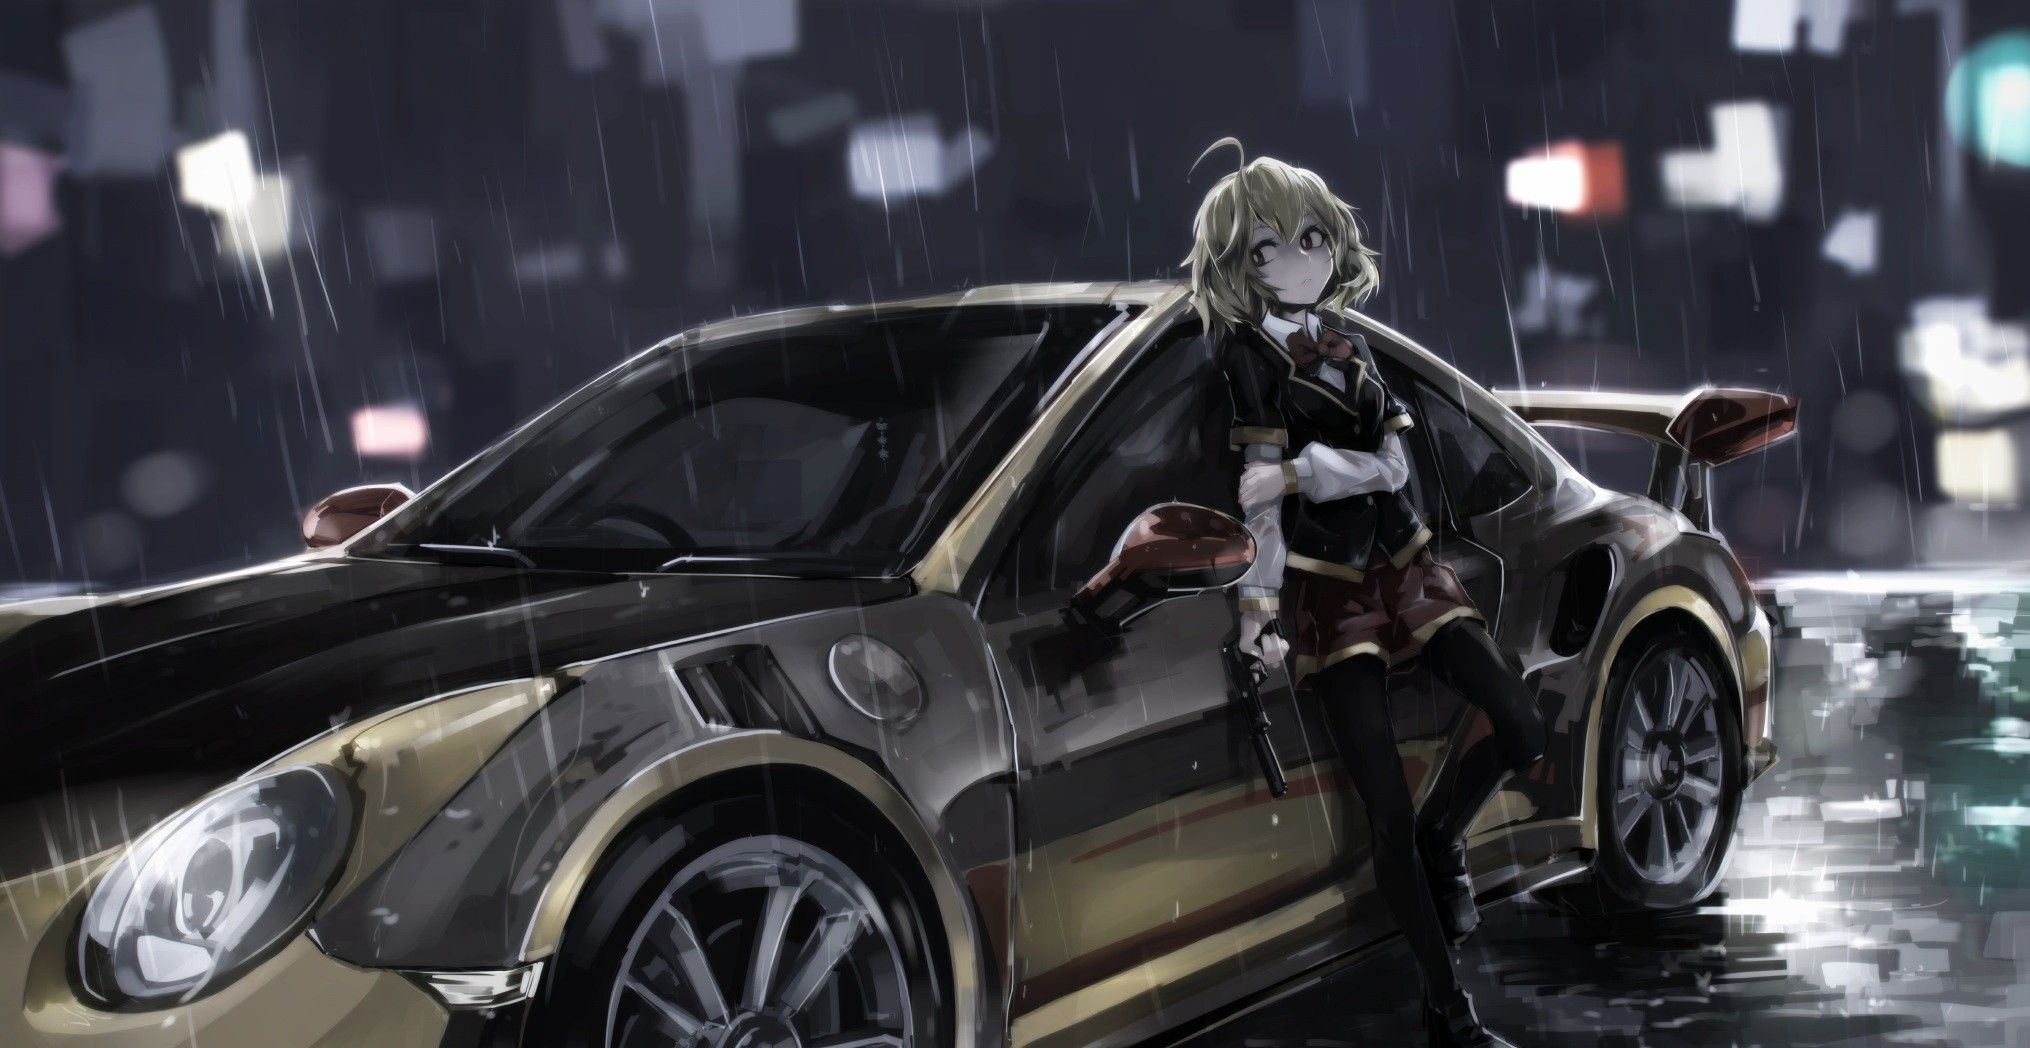 Pin On Illustration Girls Cool cars with girls wallpaper free hd